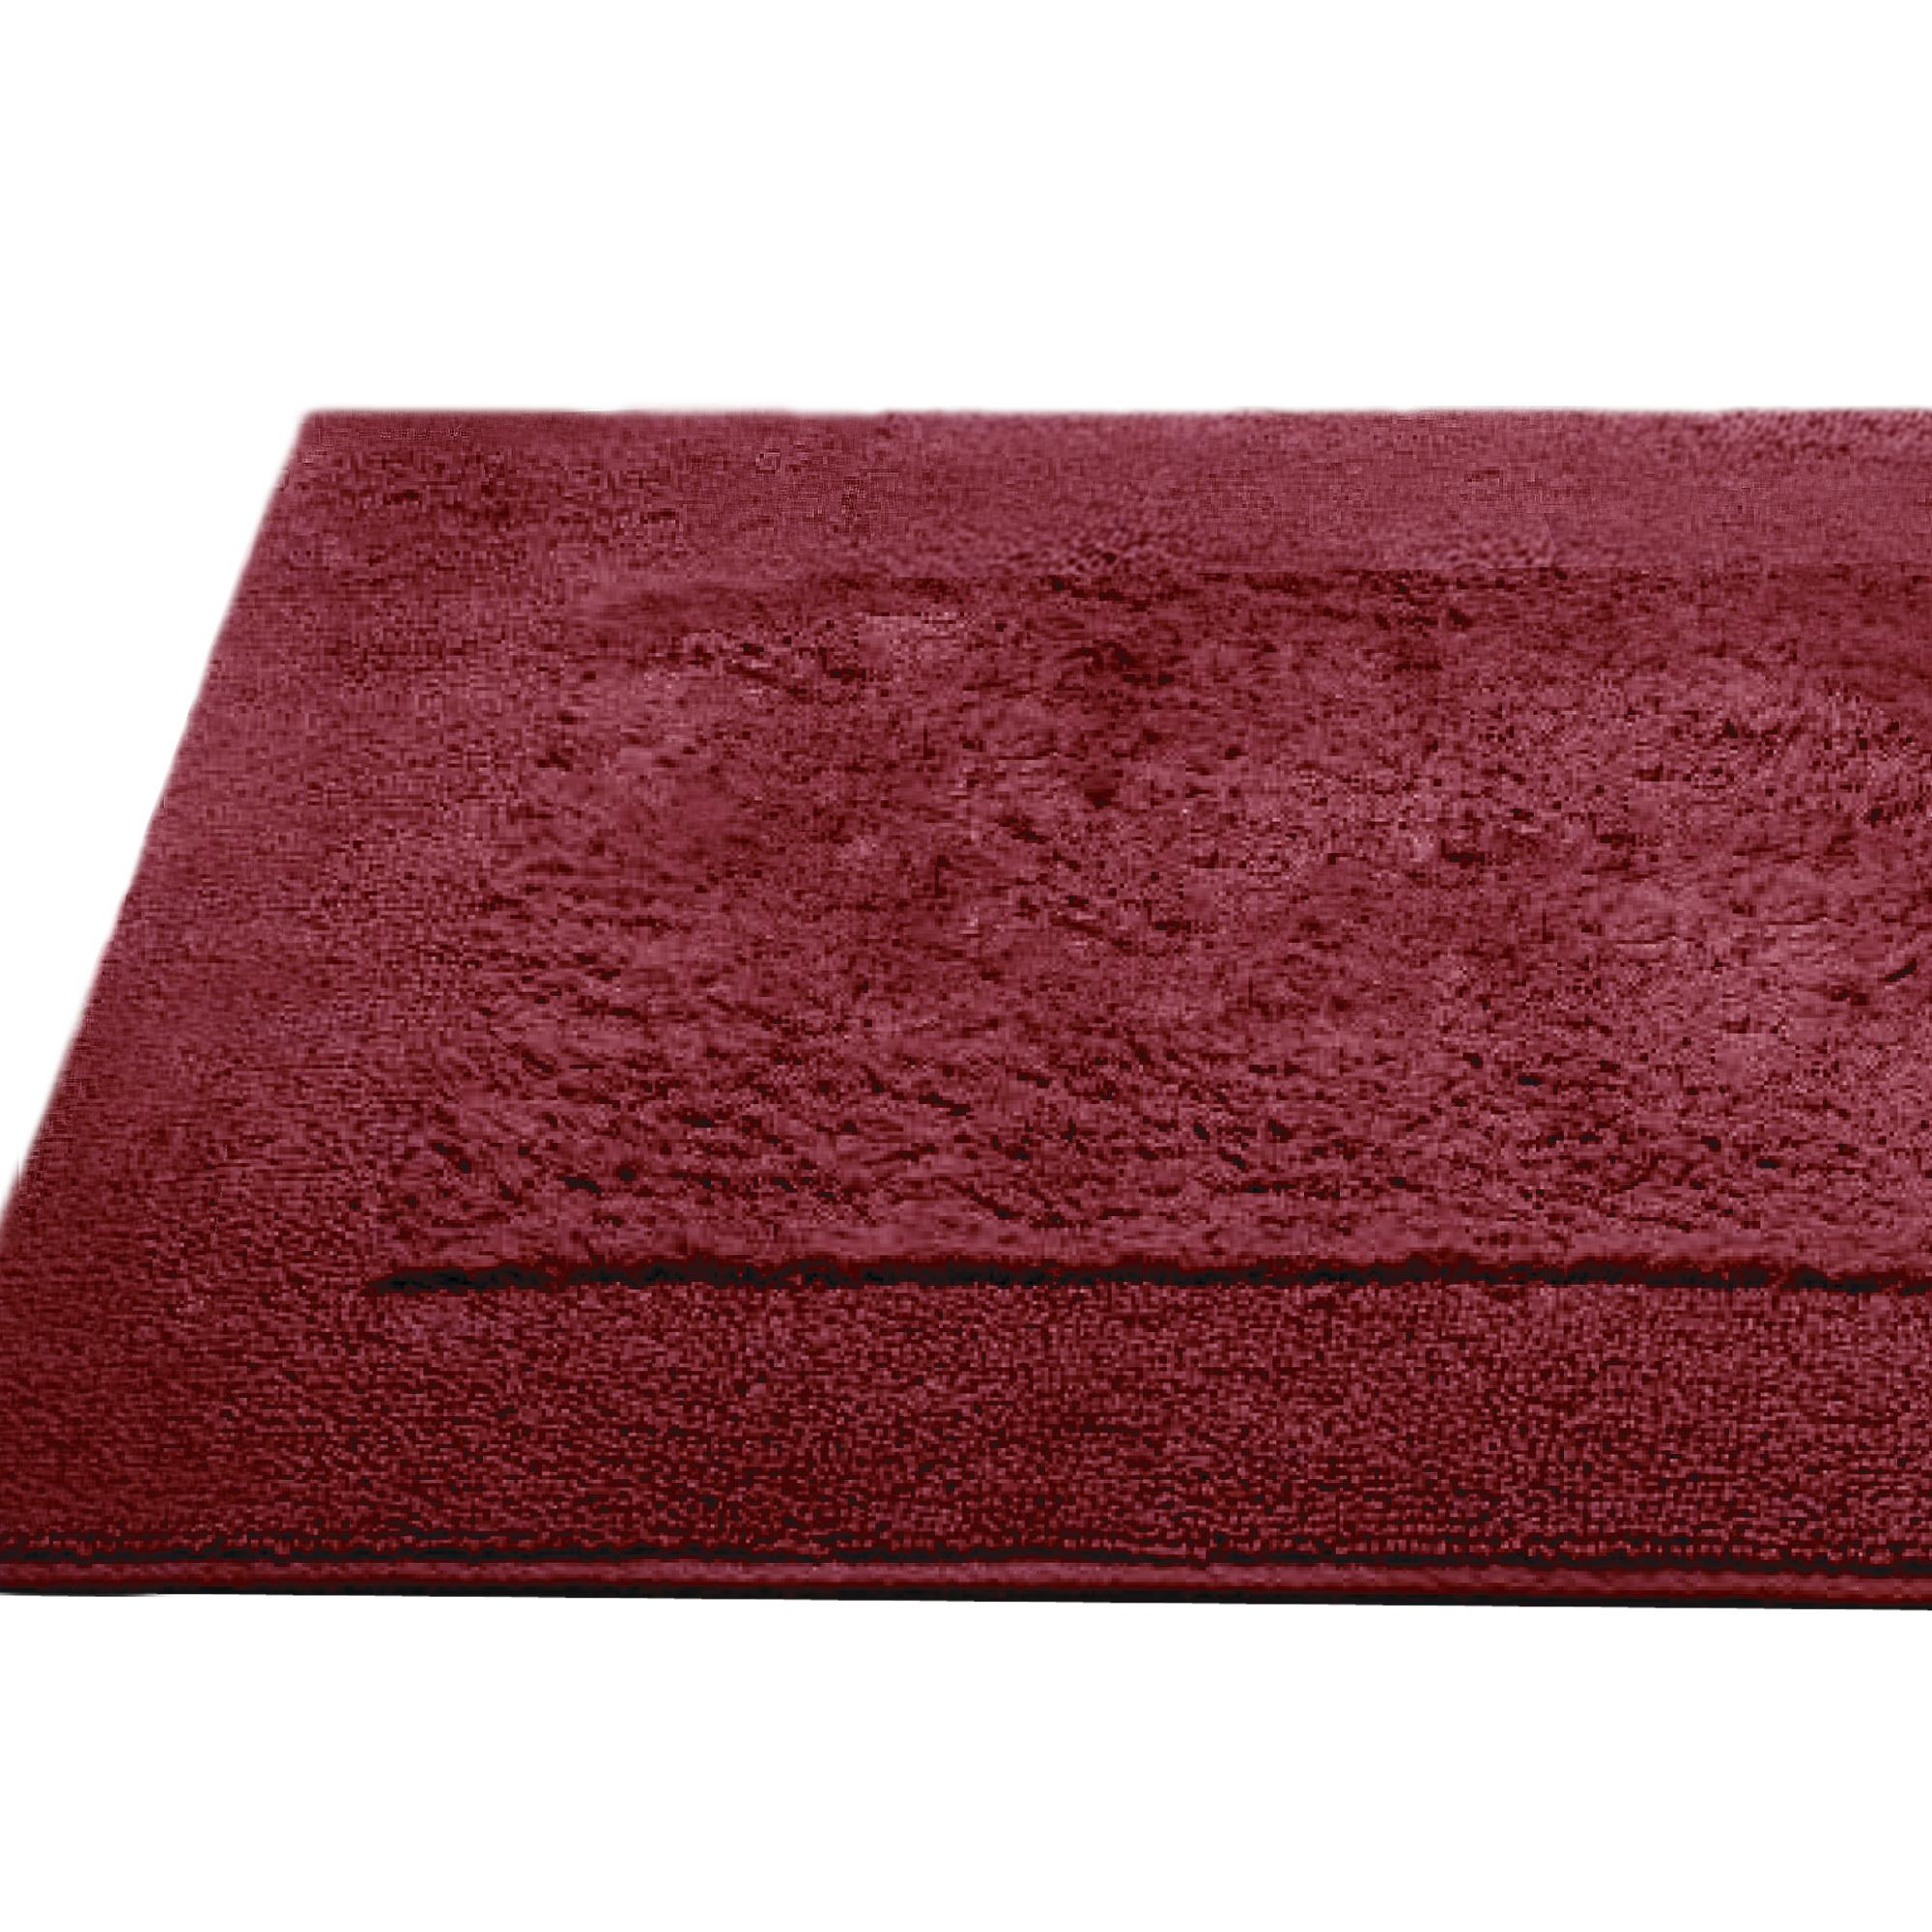 tapis de bain 60x90cm coton uni dream rouge bordeaux. Black Bedroom Furniture Sets. Home Design Ideas